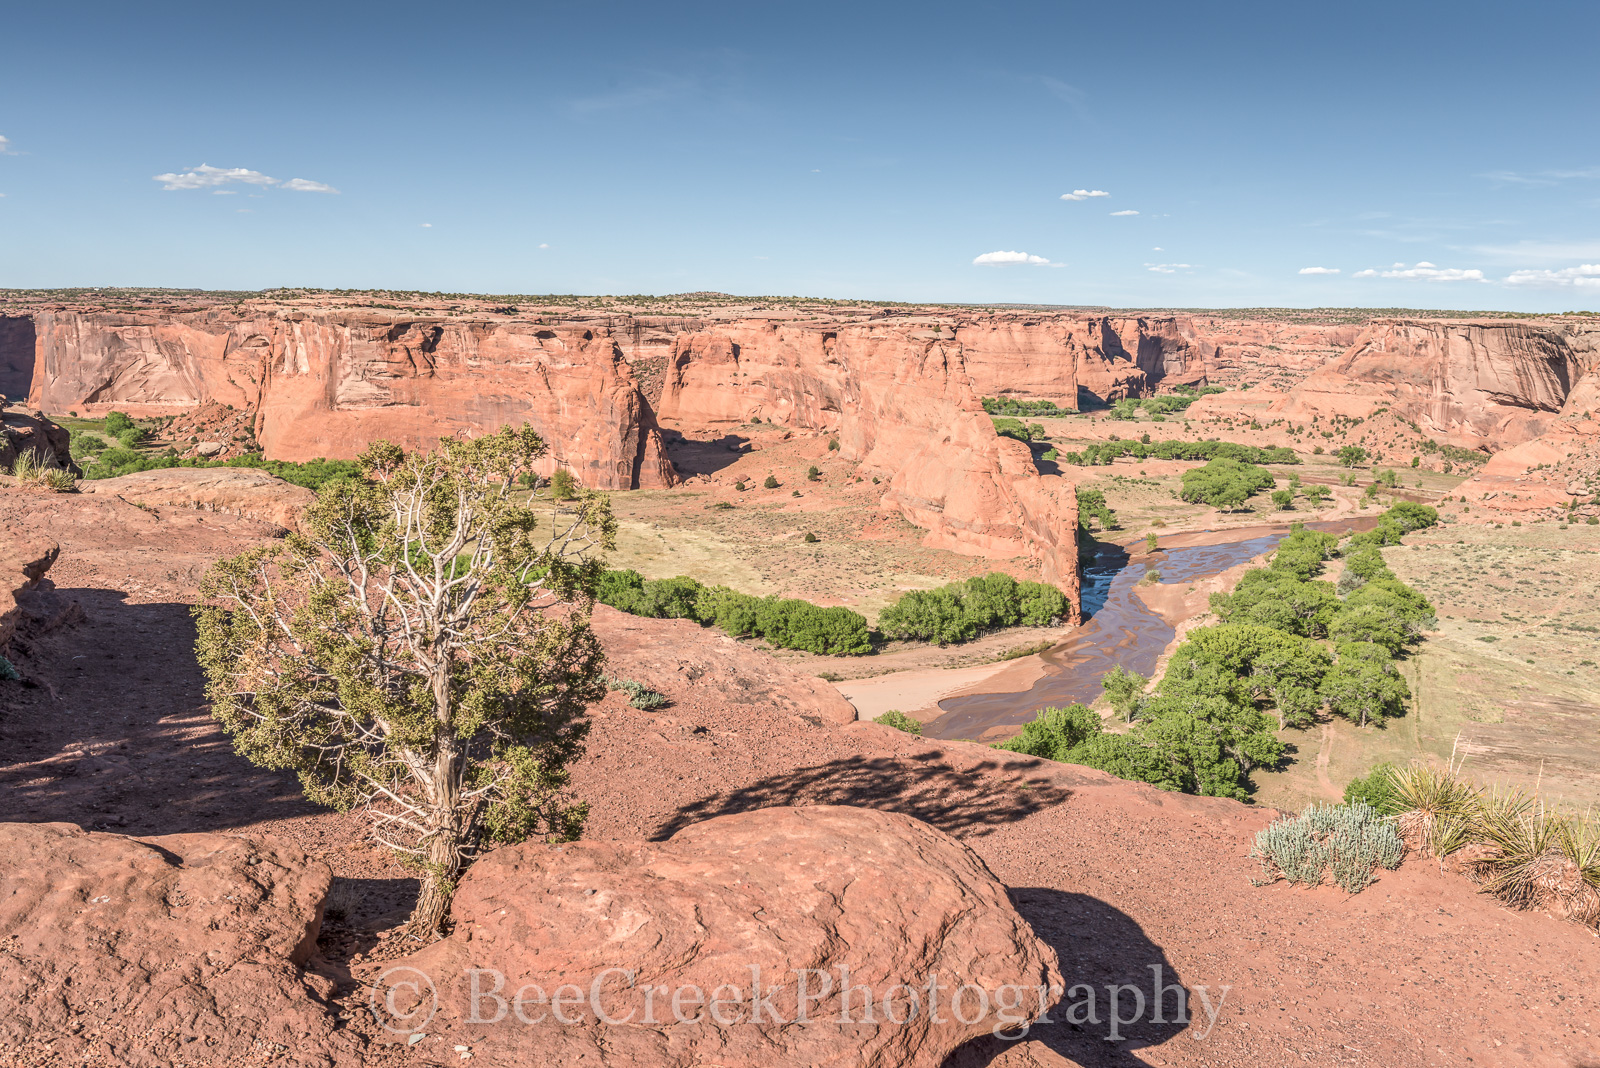 Anasazi Indian villages built in the cliffs, Anasazi lived here for 5000 years, Arizona, Canyon de Chelly, Canyon de Chelly from above, Indian life, Navajo Indian Reservation, Red rock landscapes, Vie, photo